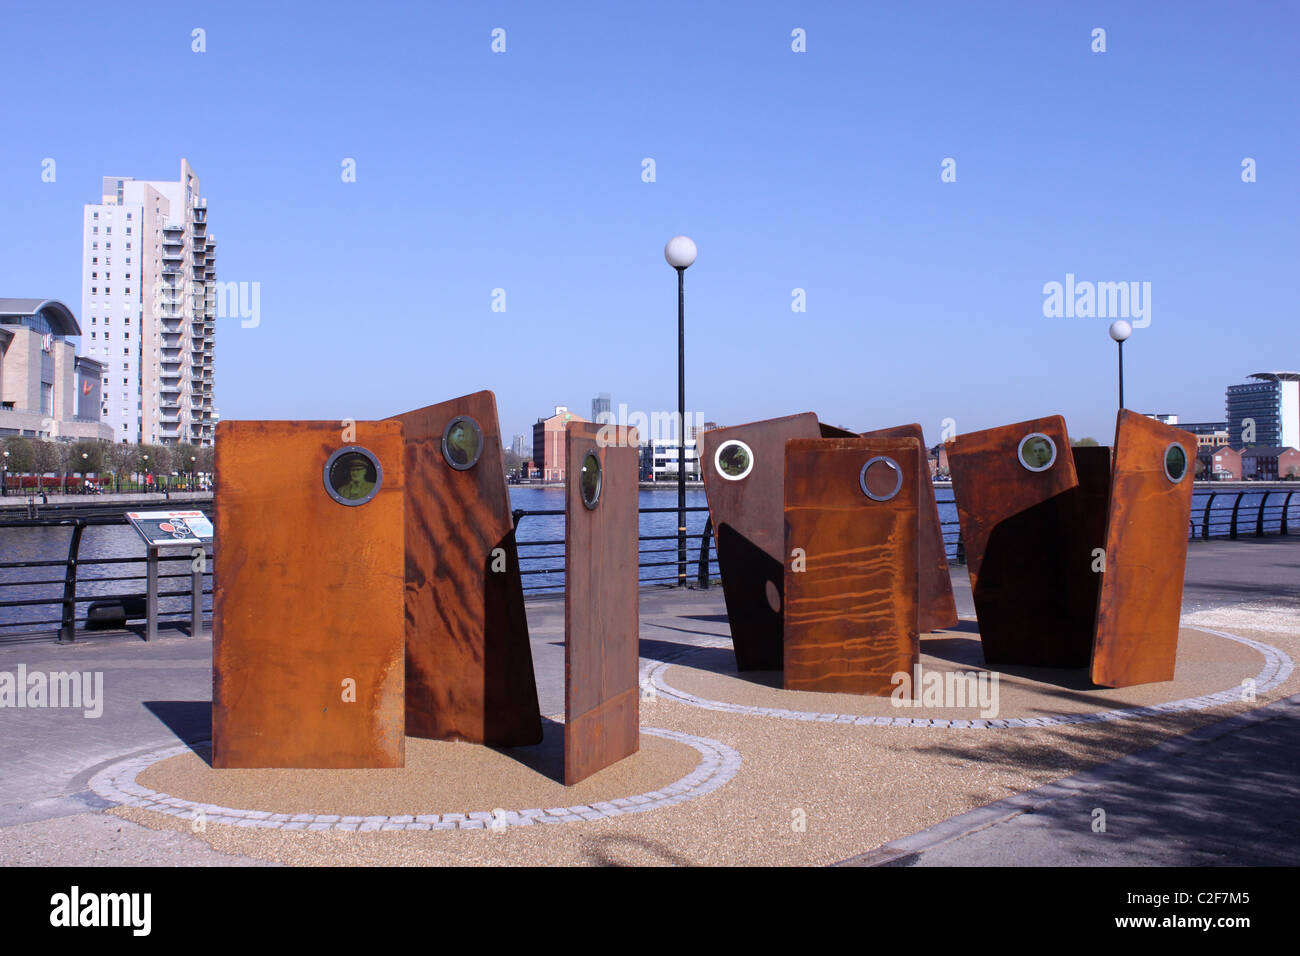 Casuals by Broadbent, a sculpture at Salford Quays, Manchester which is part of the unlocking Salford Quays Heritage - Stock Image